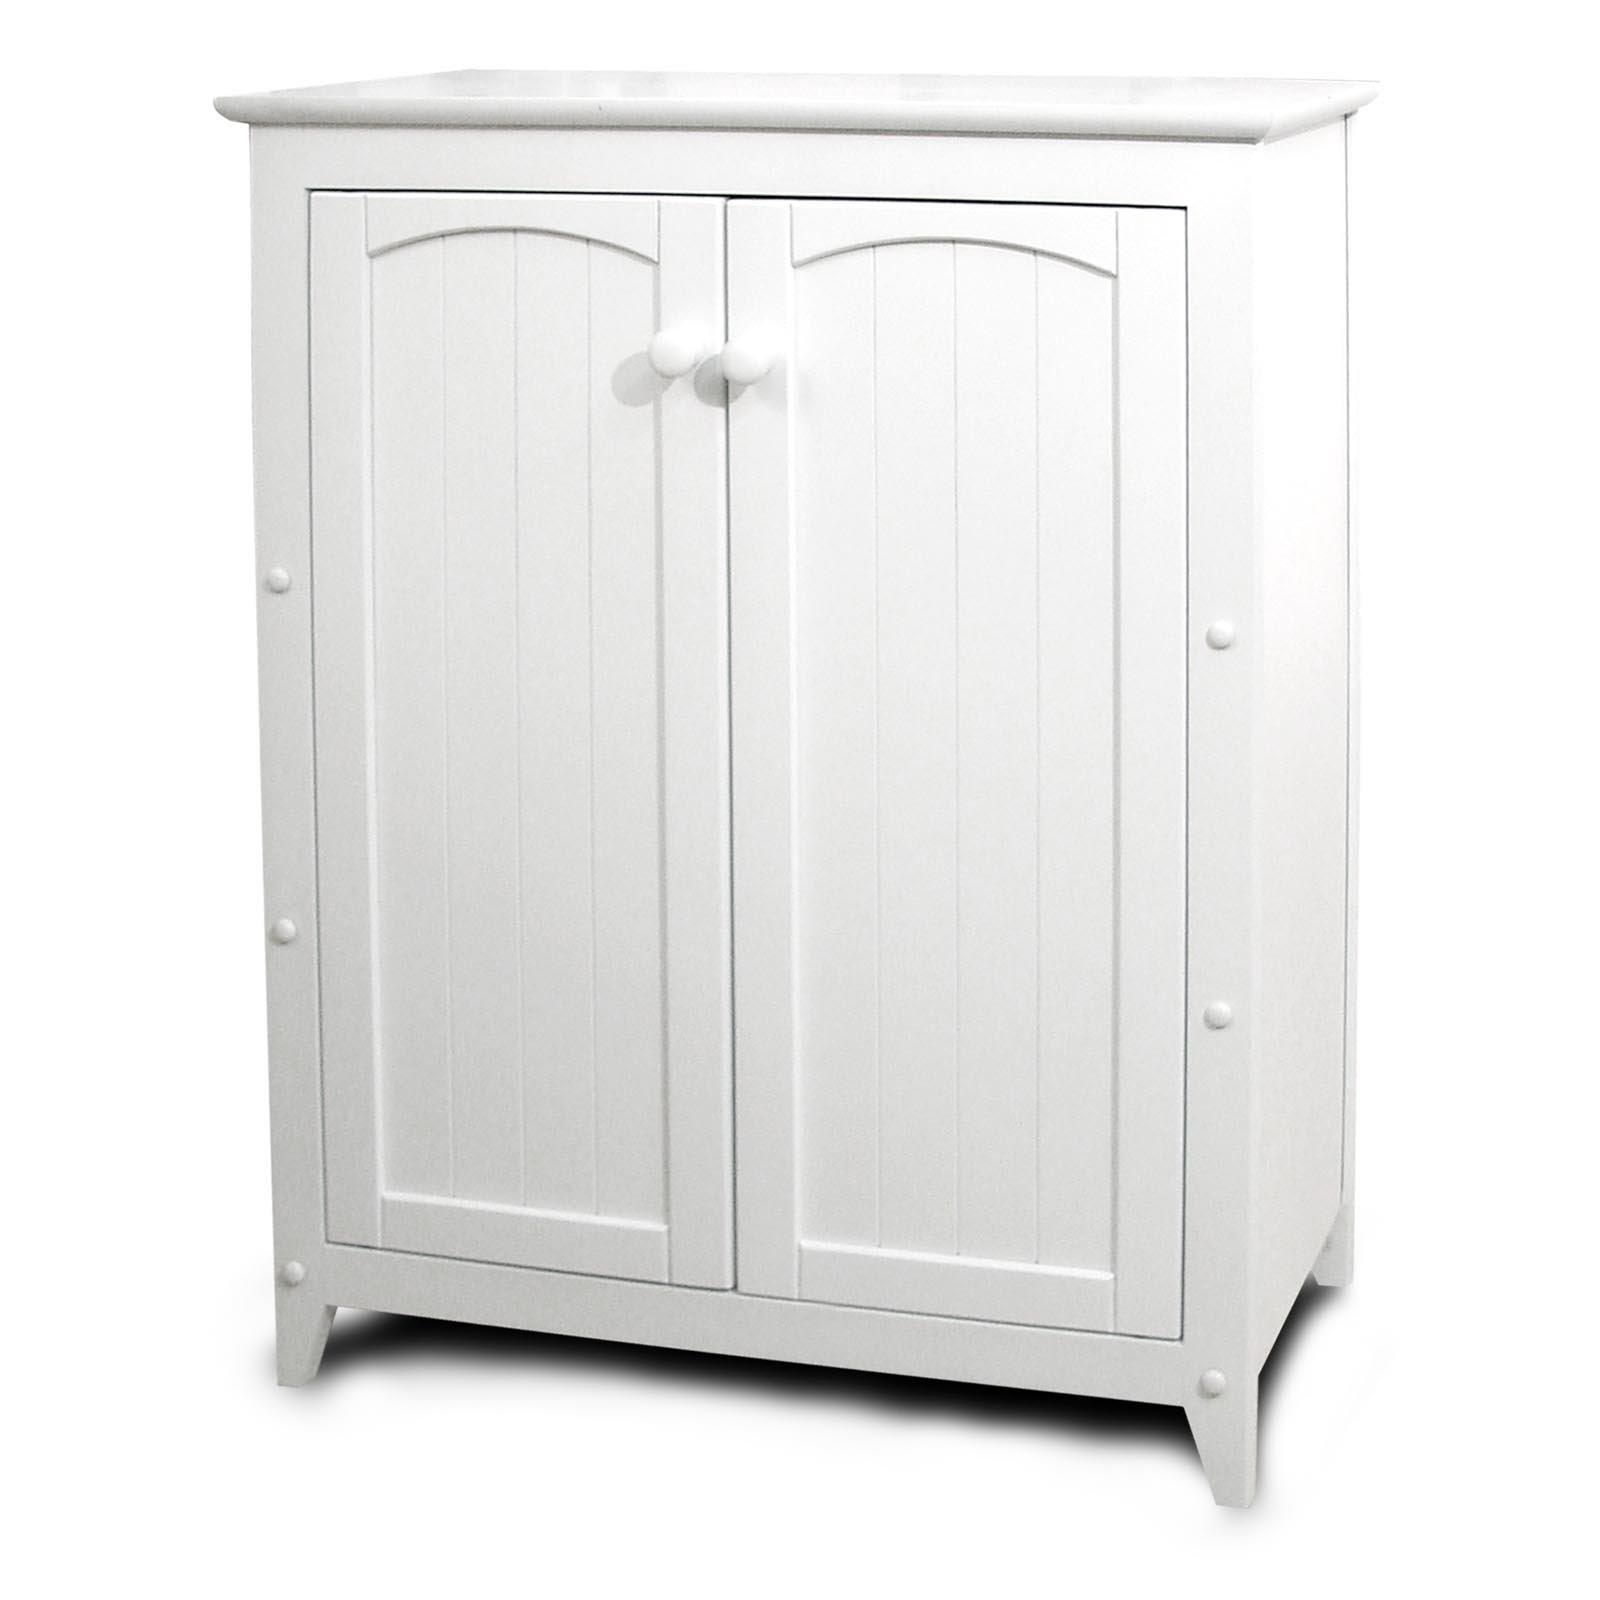 Short Storage Cabinets With Doors